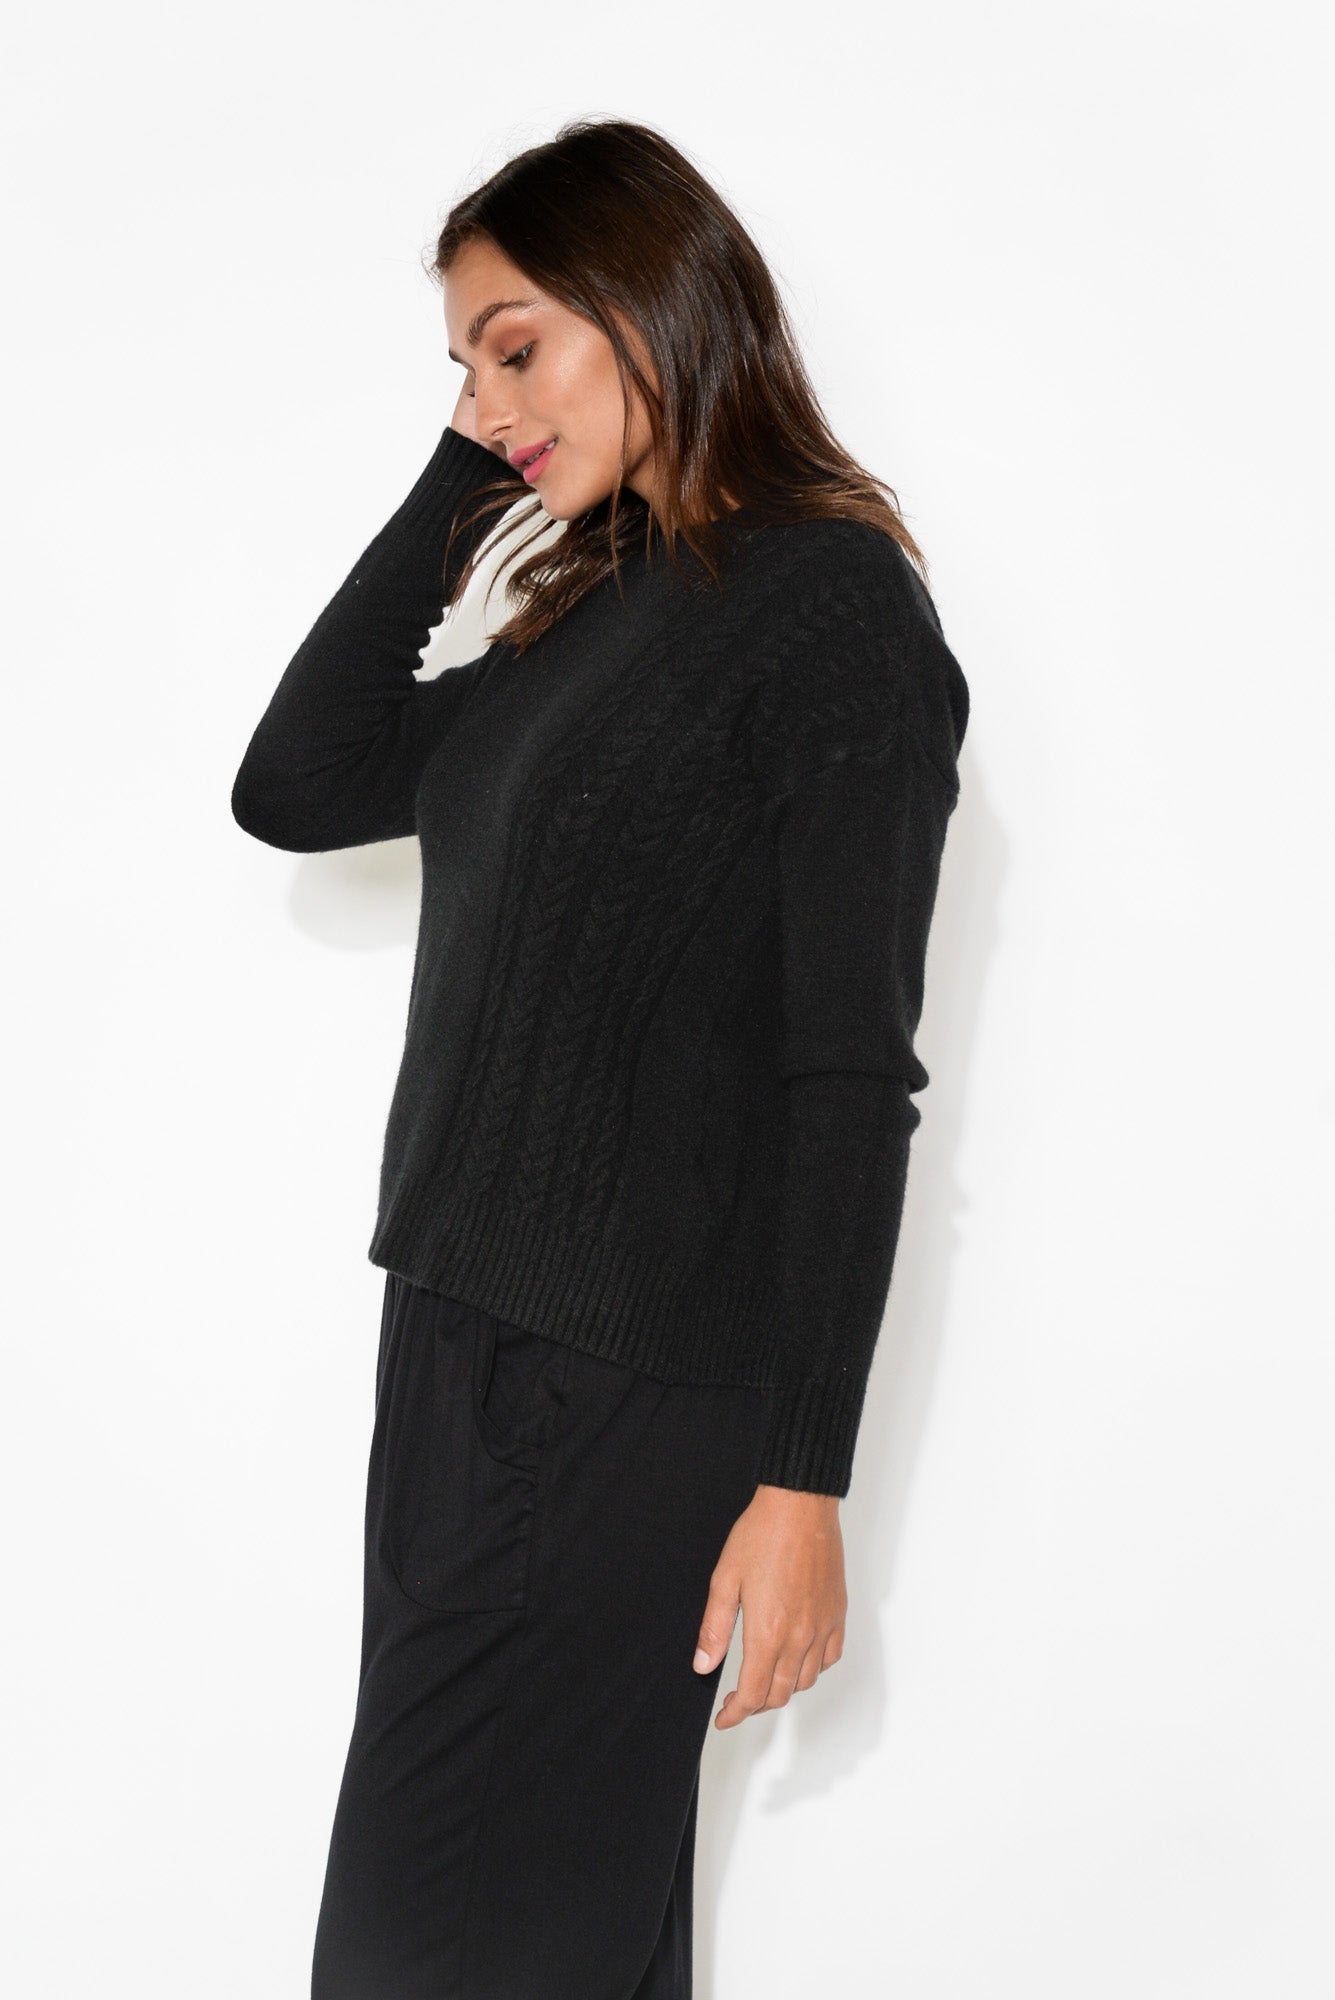 Judy Black Knitted Jumper